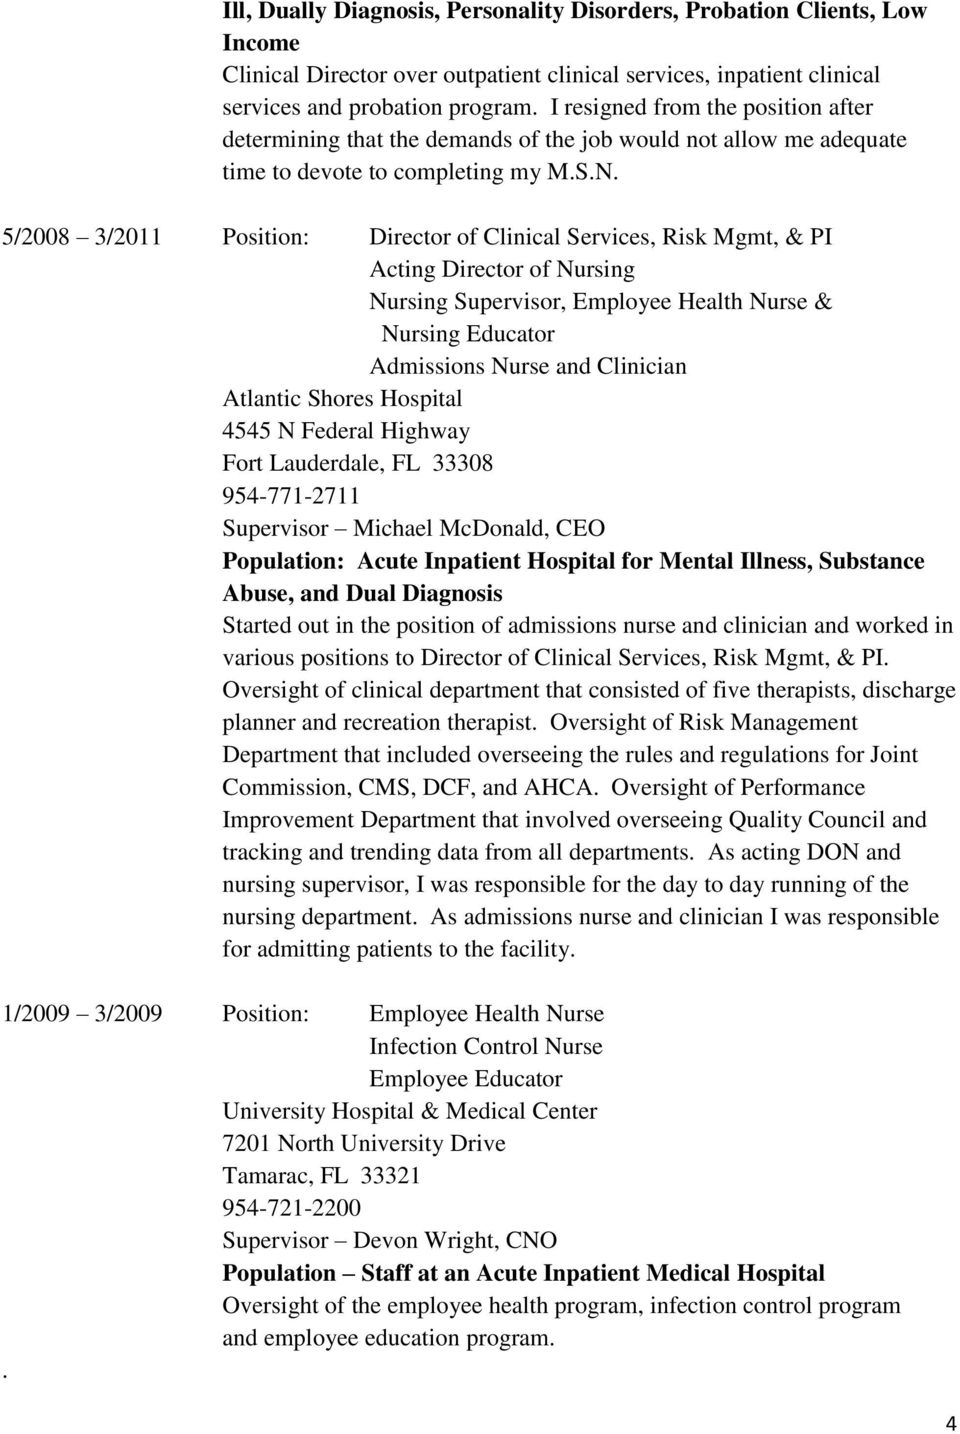 5/2008 3/2011 Position: Director of Clinical Services, Risk Mgmt, & PI Acting Director of Nursing Nursing Supervisor, Employee Health Nurse & Nursing Educator Admissions Nurse and Clinician Atlantic